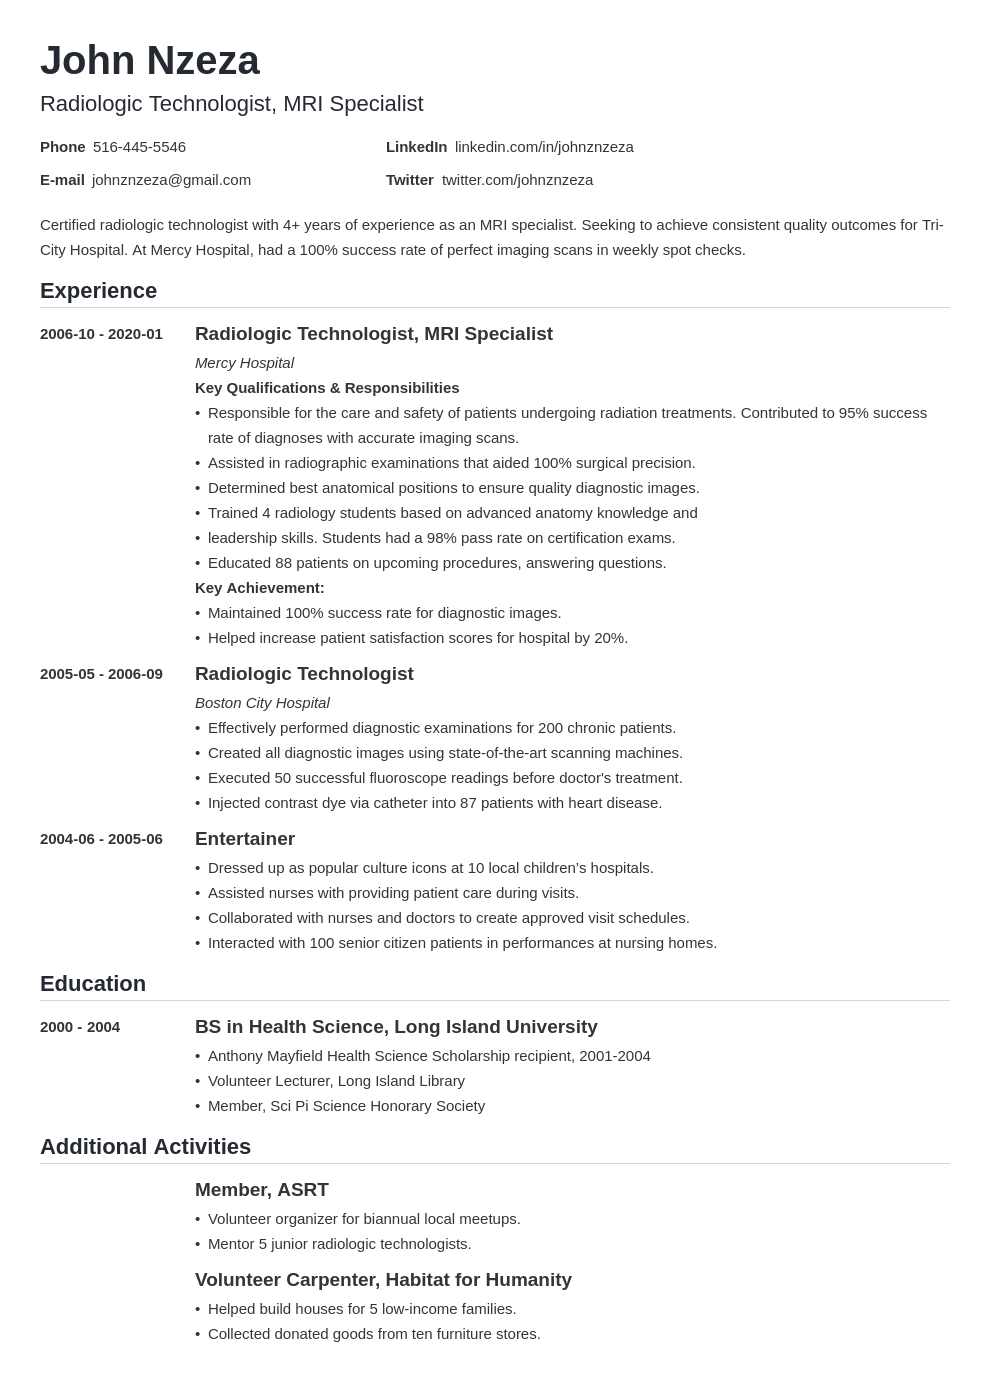 Resume Examples For X Ray Technologist Andriblog Design Resume Examples Radiology Technologist Job Resume Examples